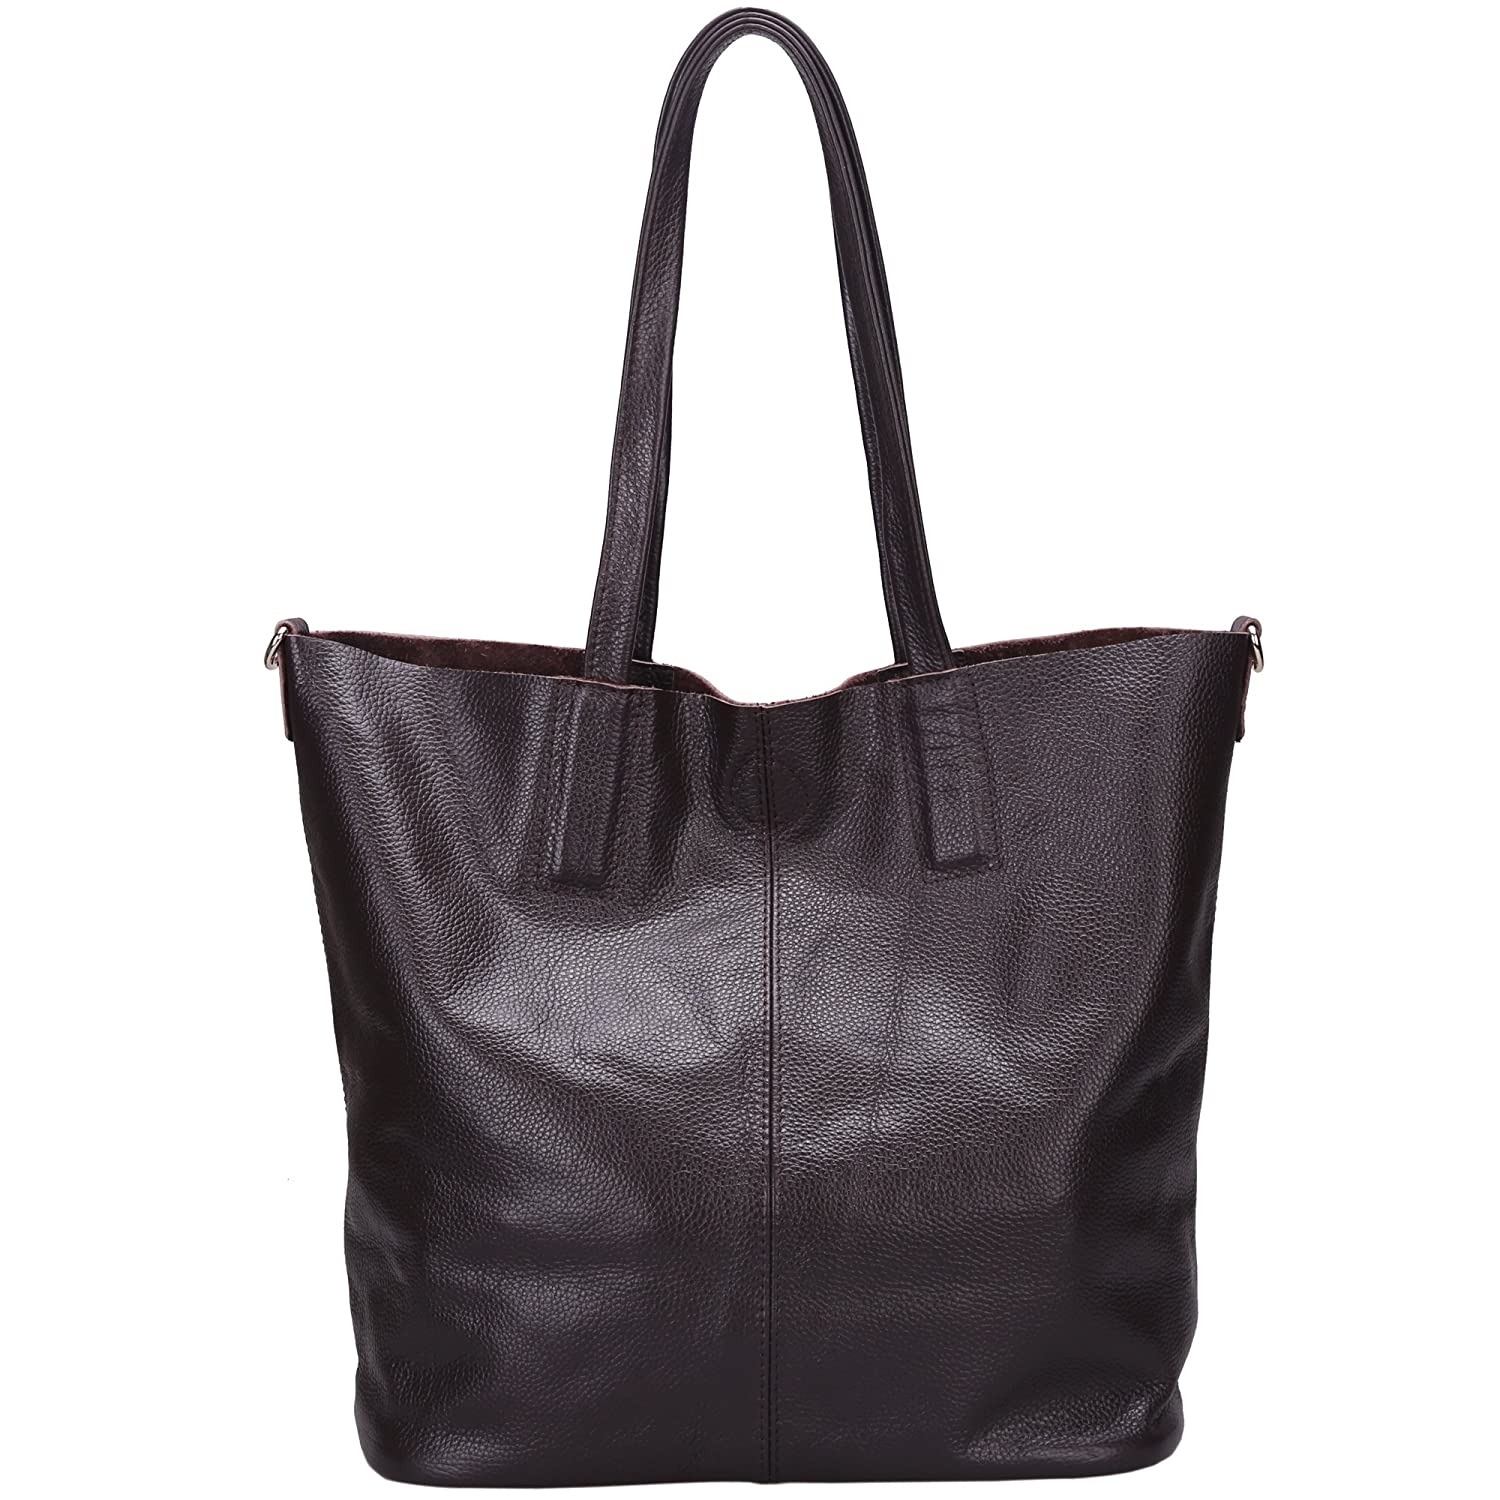 Damero Women's Soft Leather Tote Bag with Shoulder Strap